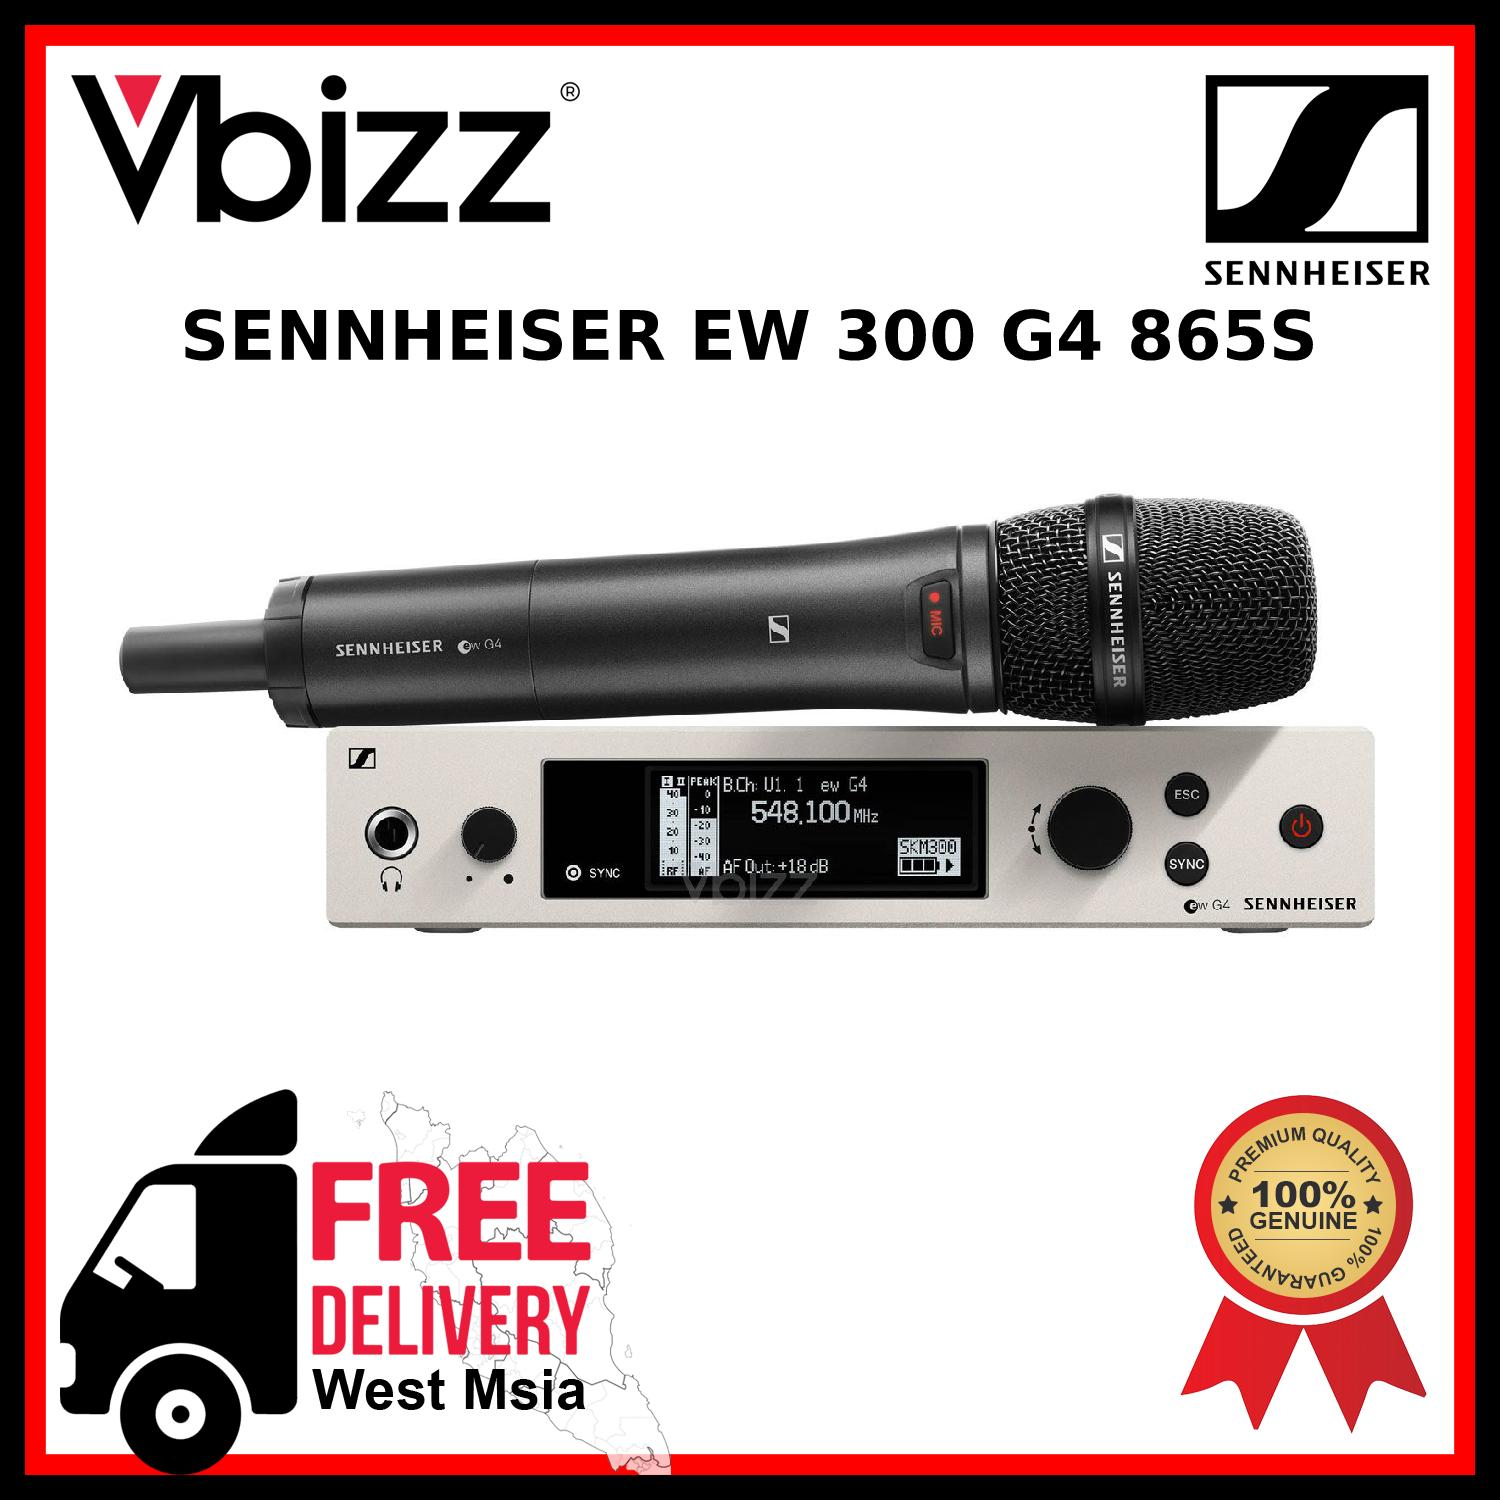 Sennheiser EW300 G4 865S *FREE DELIVERY* Wireless Microphone System